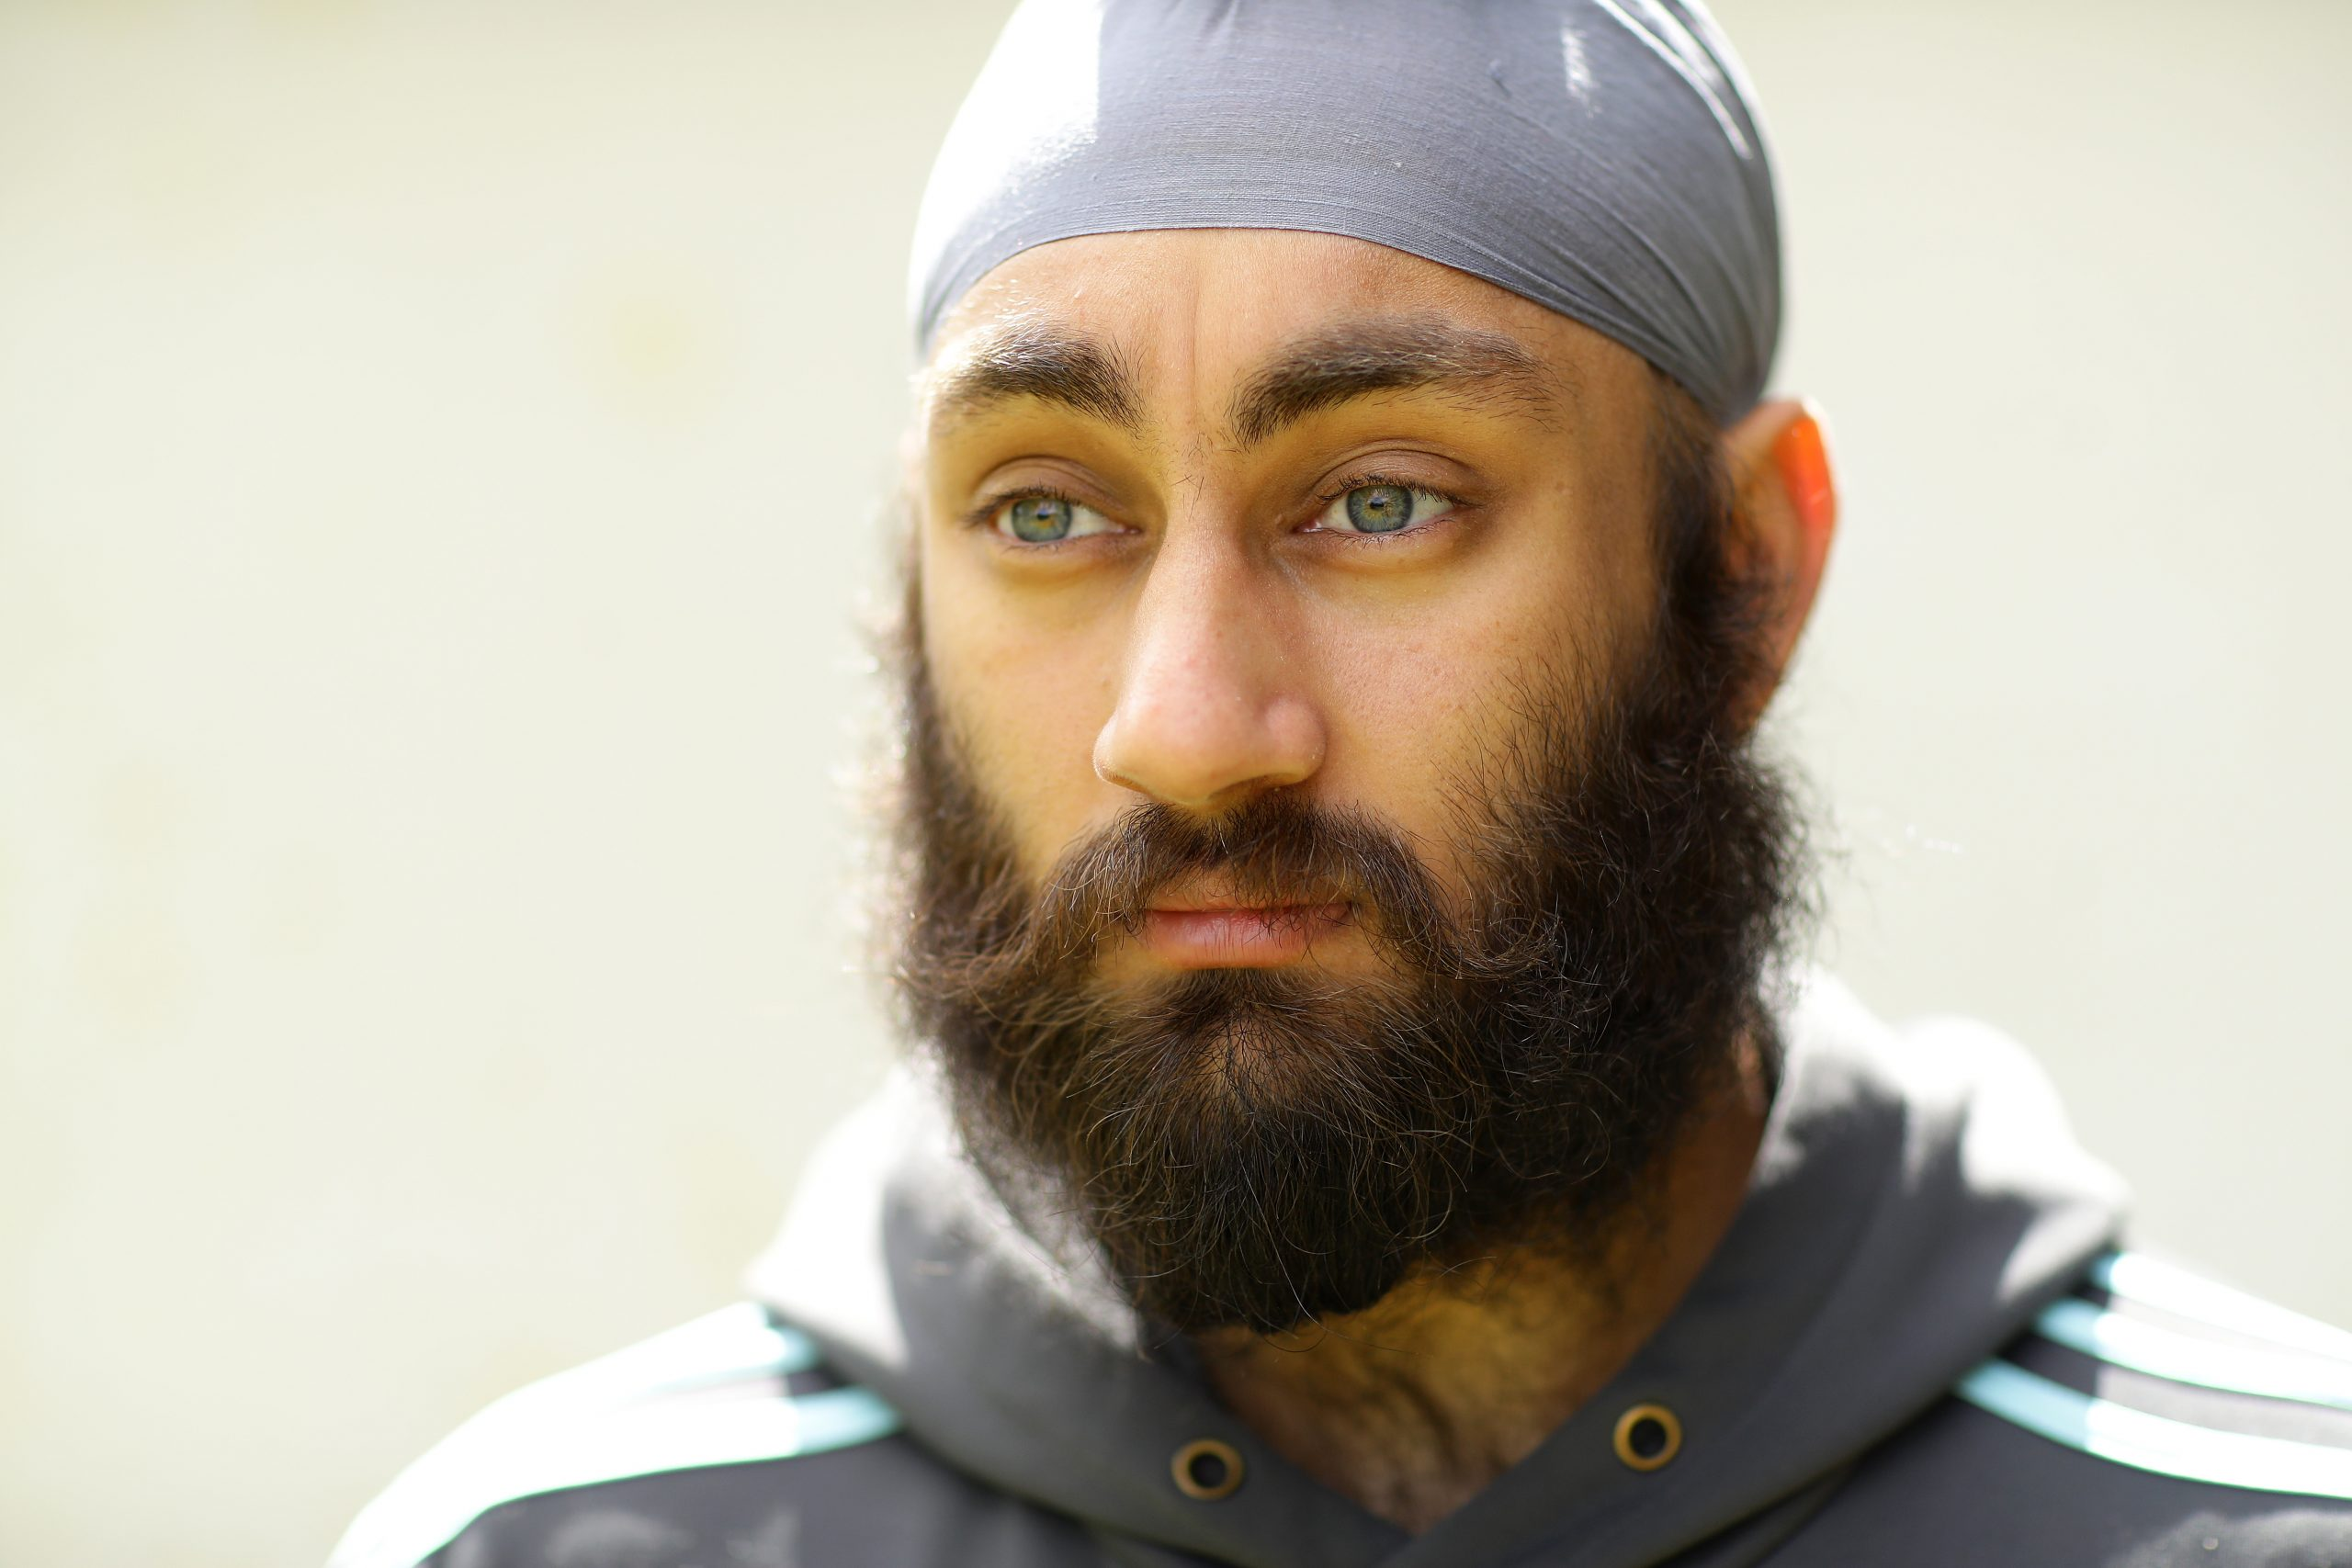 WRAYSBURY, ENGLAND - MAY 13: Surrey Cricketer Amar Virdi training at home on May 13, 2020 in Wraysbury, England. Virdi also volunteers for a 100% voluntary West London based humanitarian-aid organisation, NishkamSWAT which aims to unite and transform financially disadvantaged communities by serving love through food to those in need regardless of their creed, culture, social status or age.  (Photo by Richard Heathcote/Getty Images)